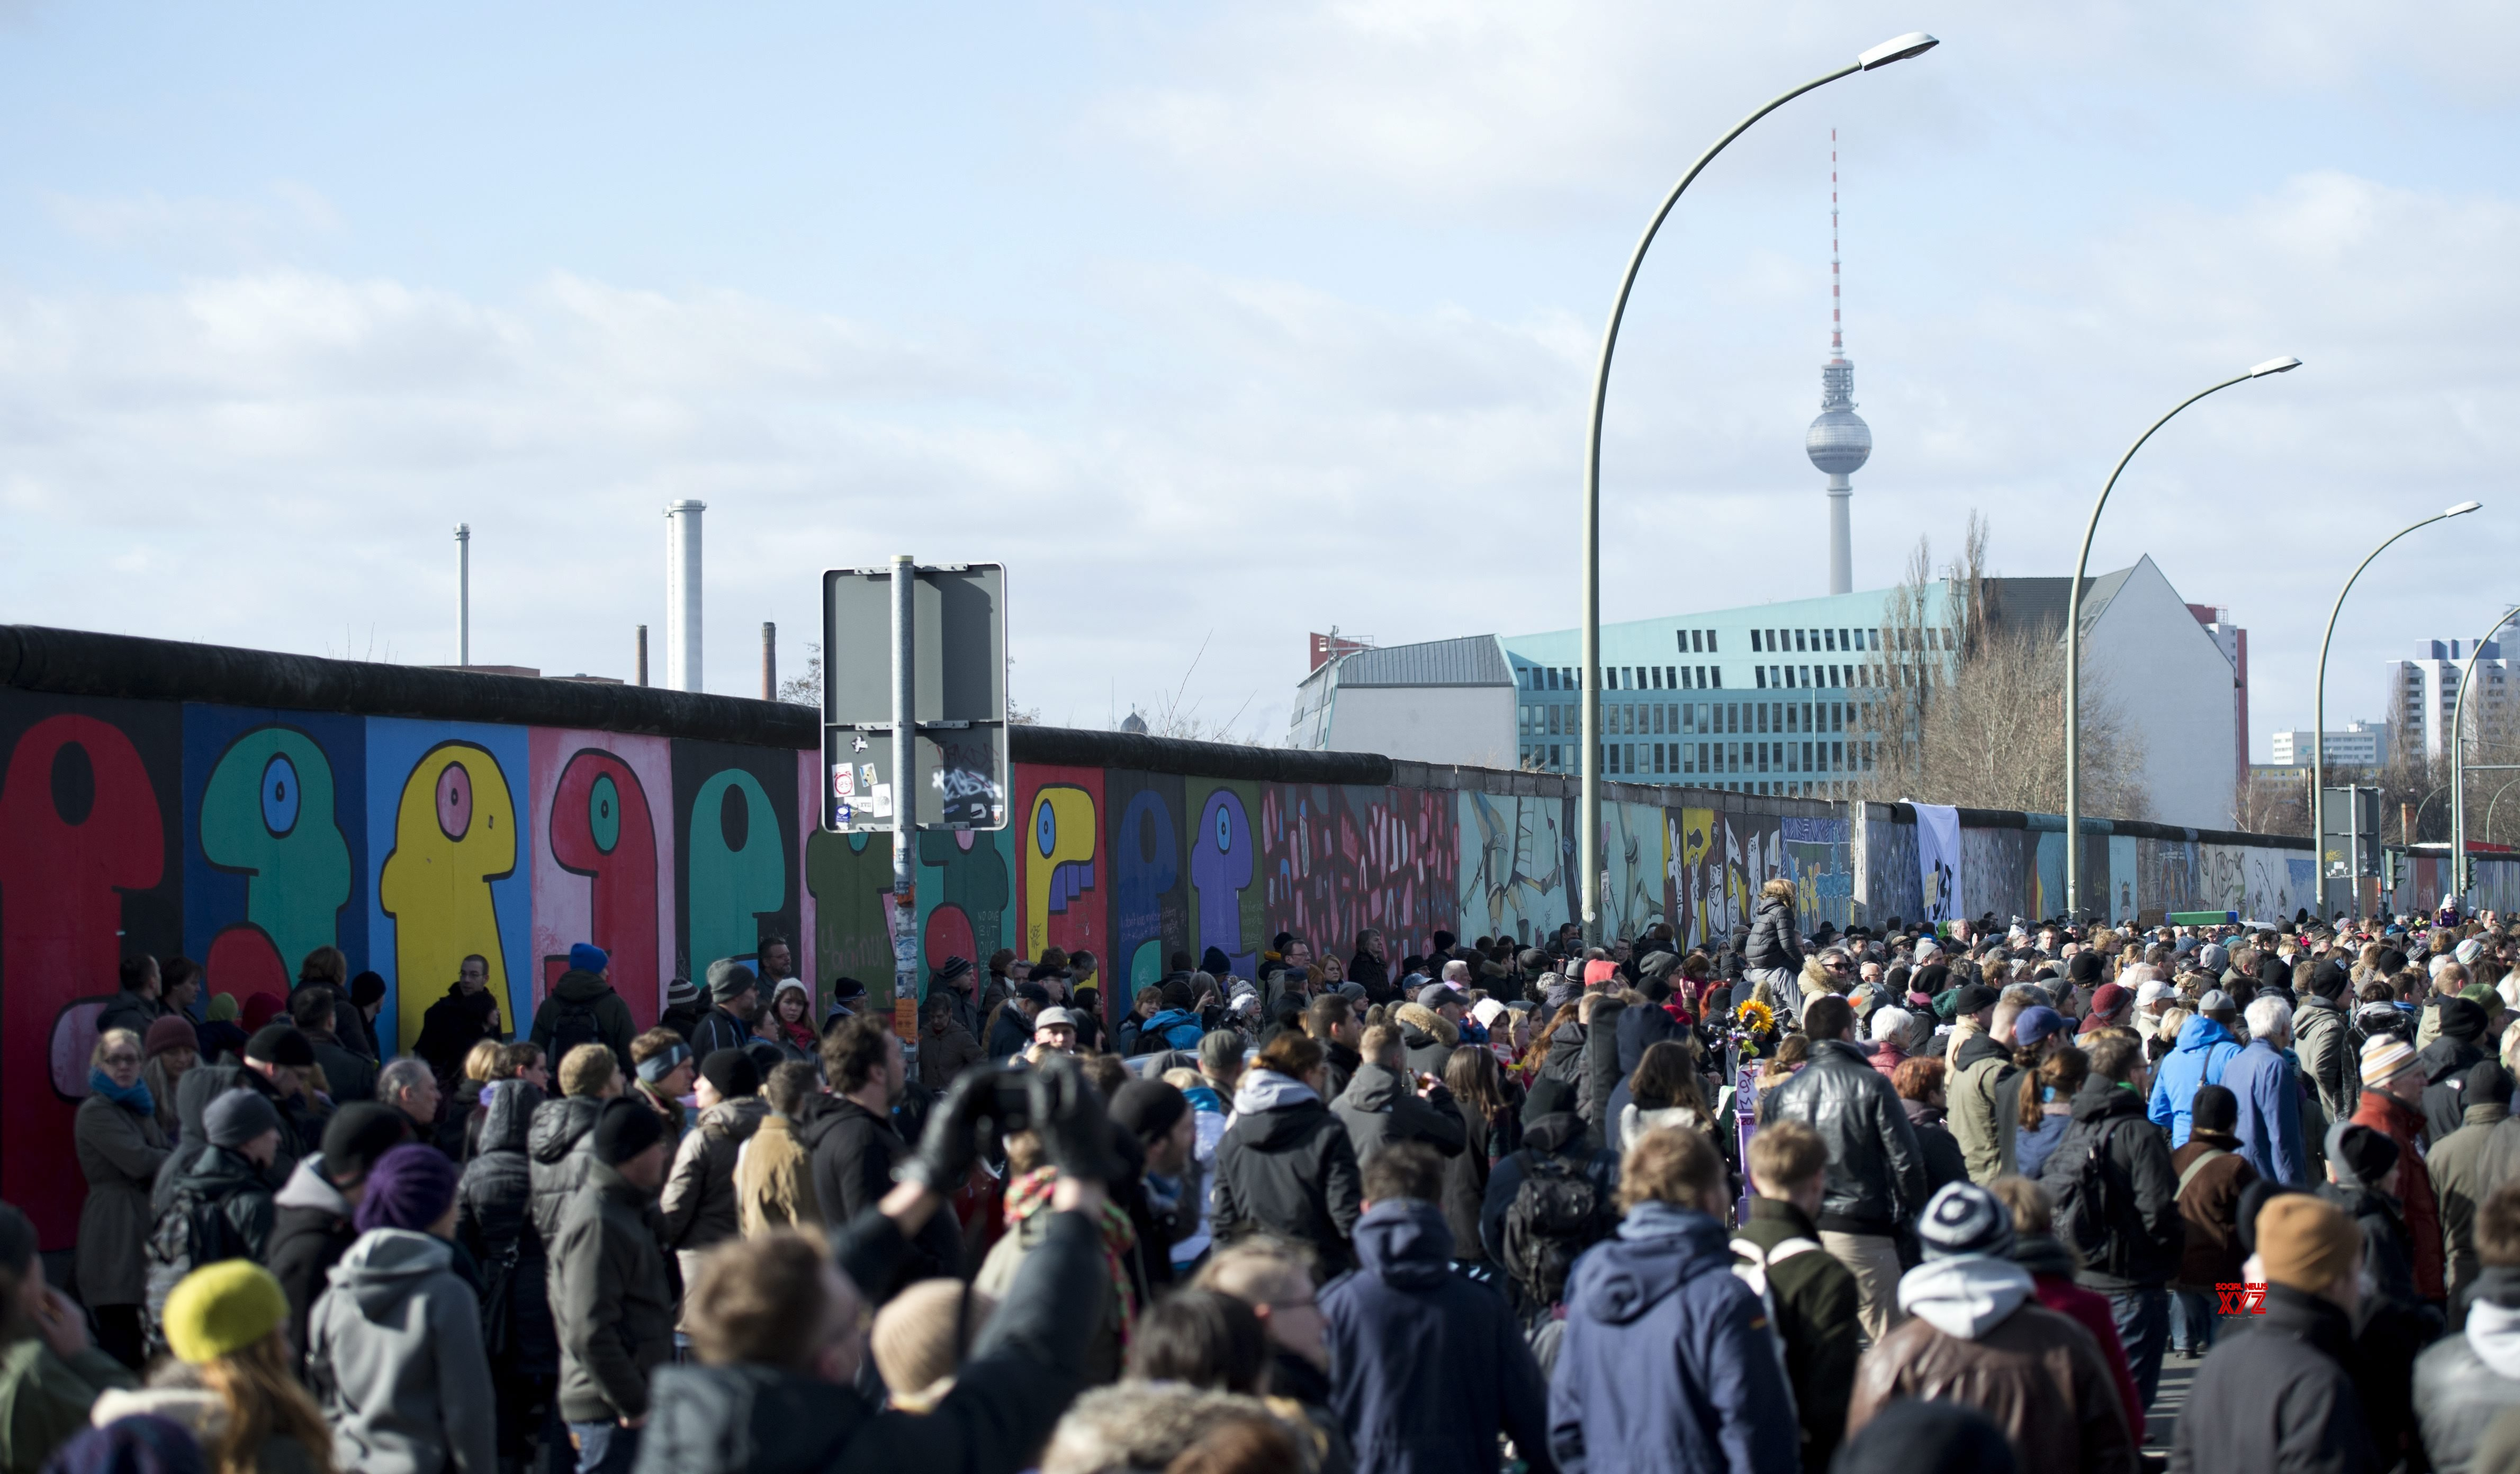 'World more divided now than when Berlin Wall fell'